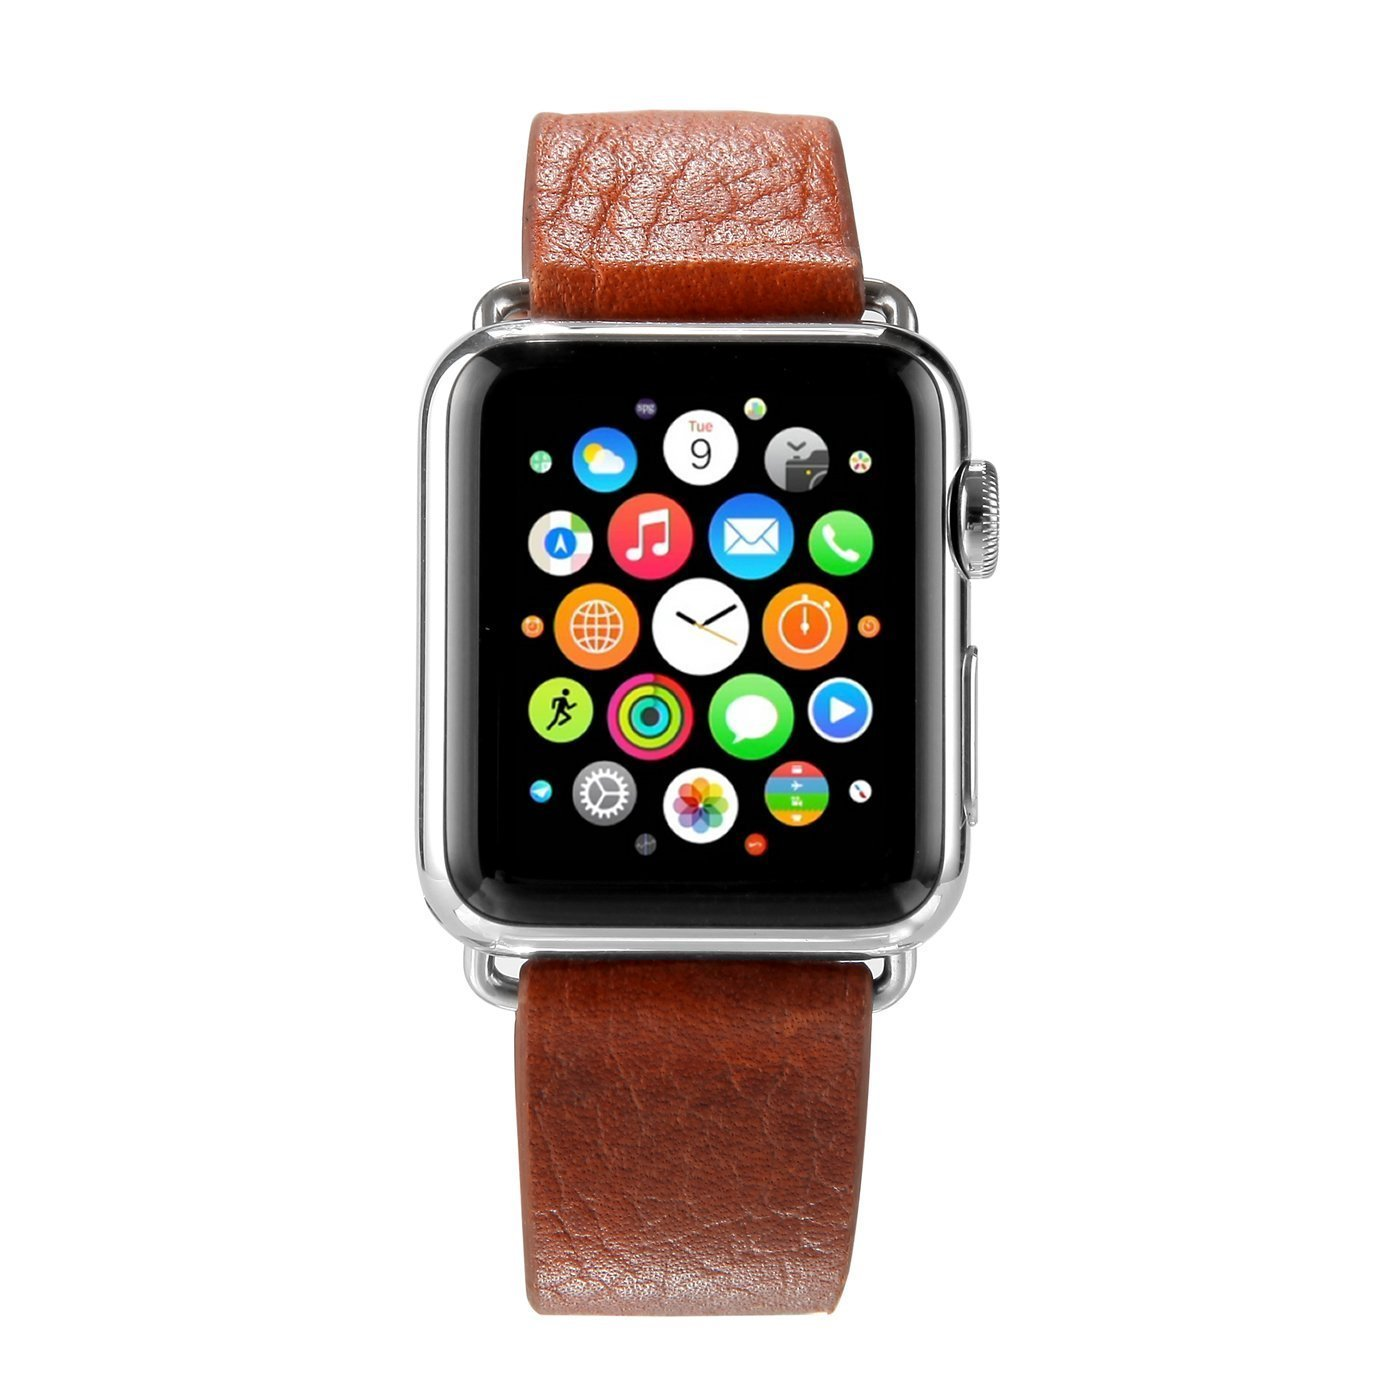 Apple Watch Band, iwatch Band w/ Metal Clasp, 42mm Genuine Leather Apple Watch Strap Wrist Band Replacement Watch Band with Metal Clasp for Apple Watch 42mm Brown Leather